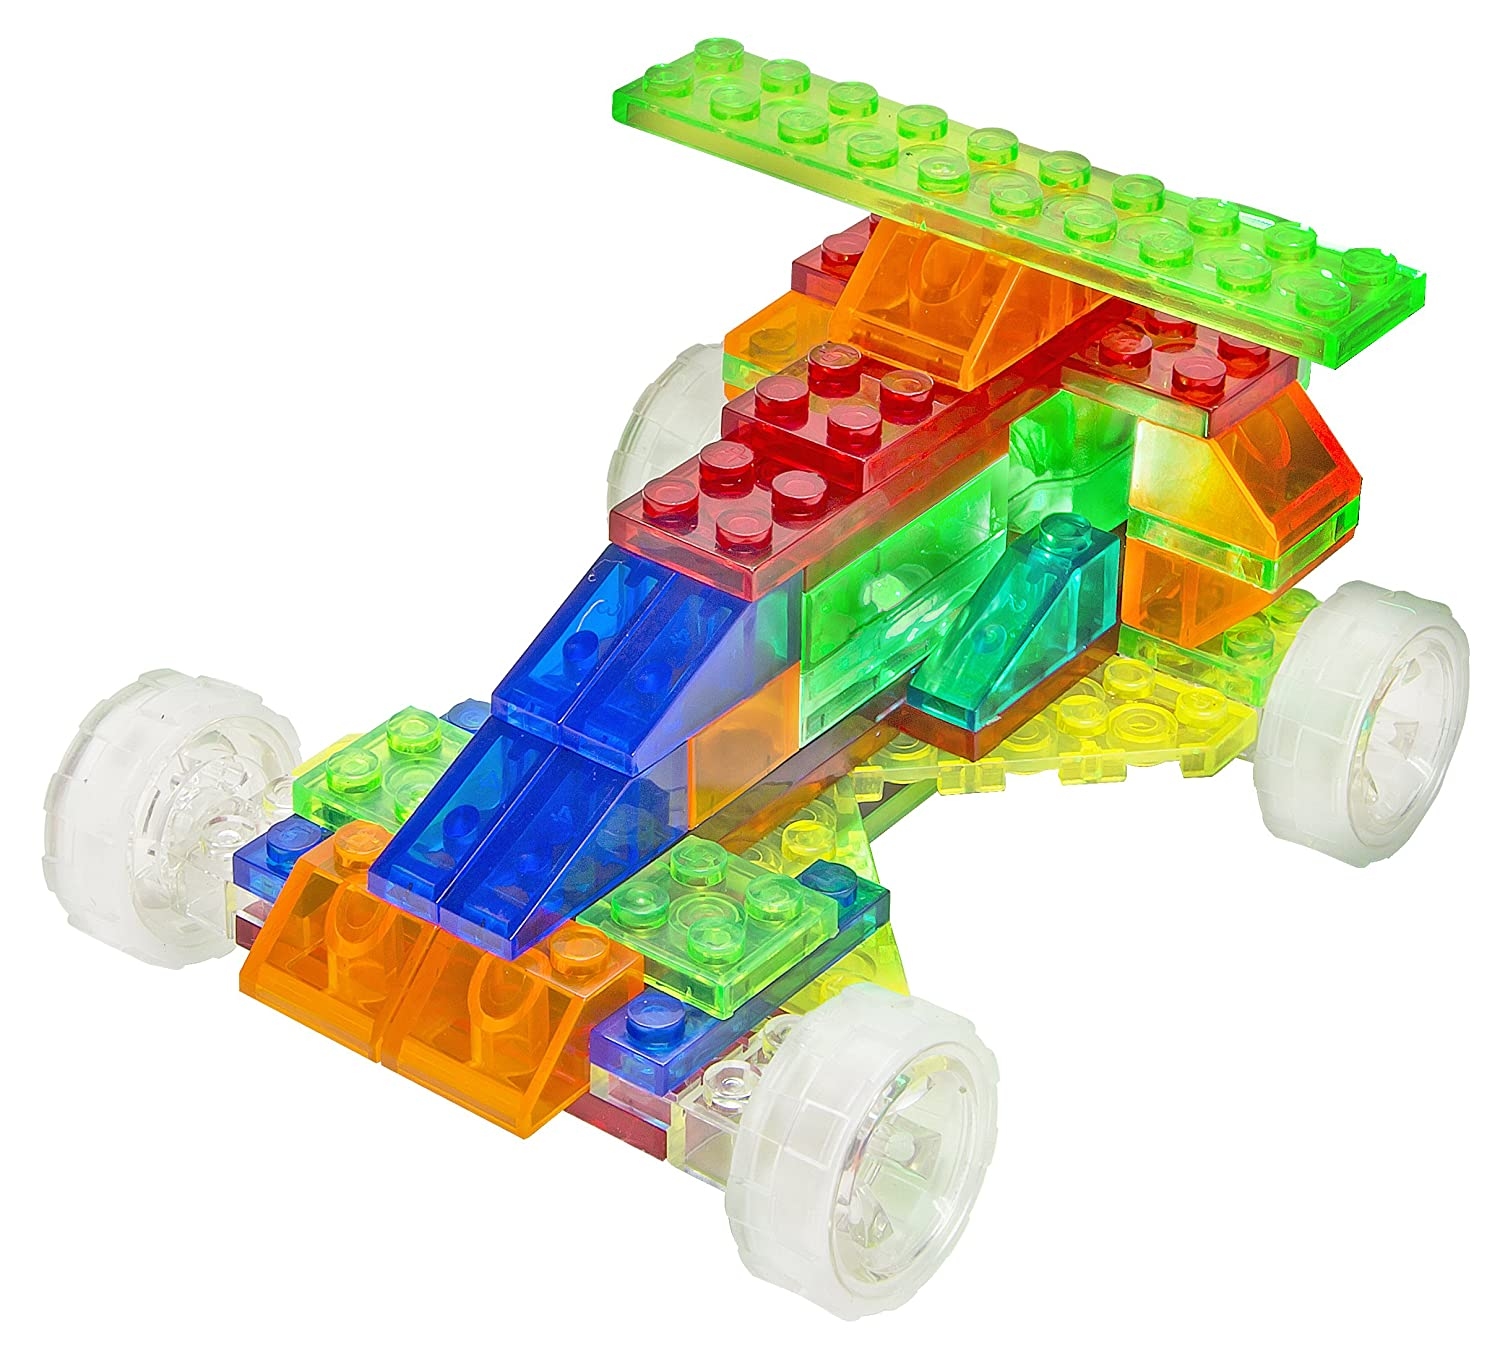 Amazon Laser Pegs 4 in 1 Cars Building Set Toys & Games